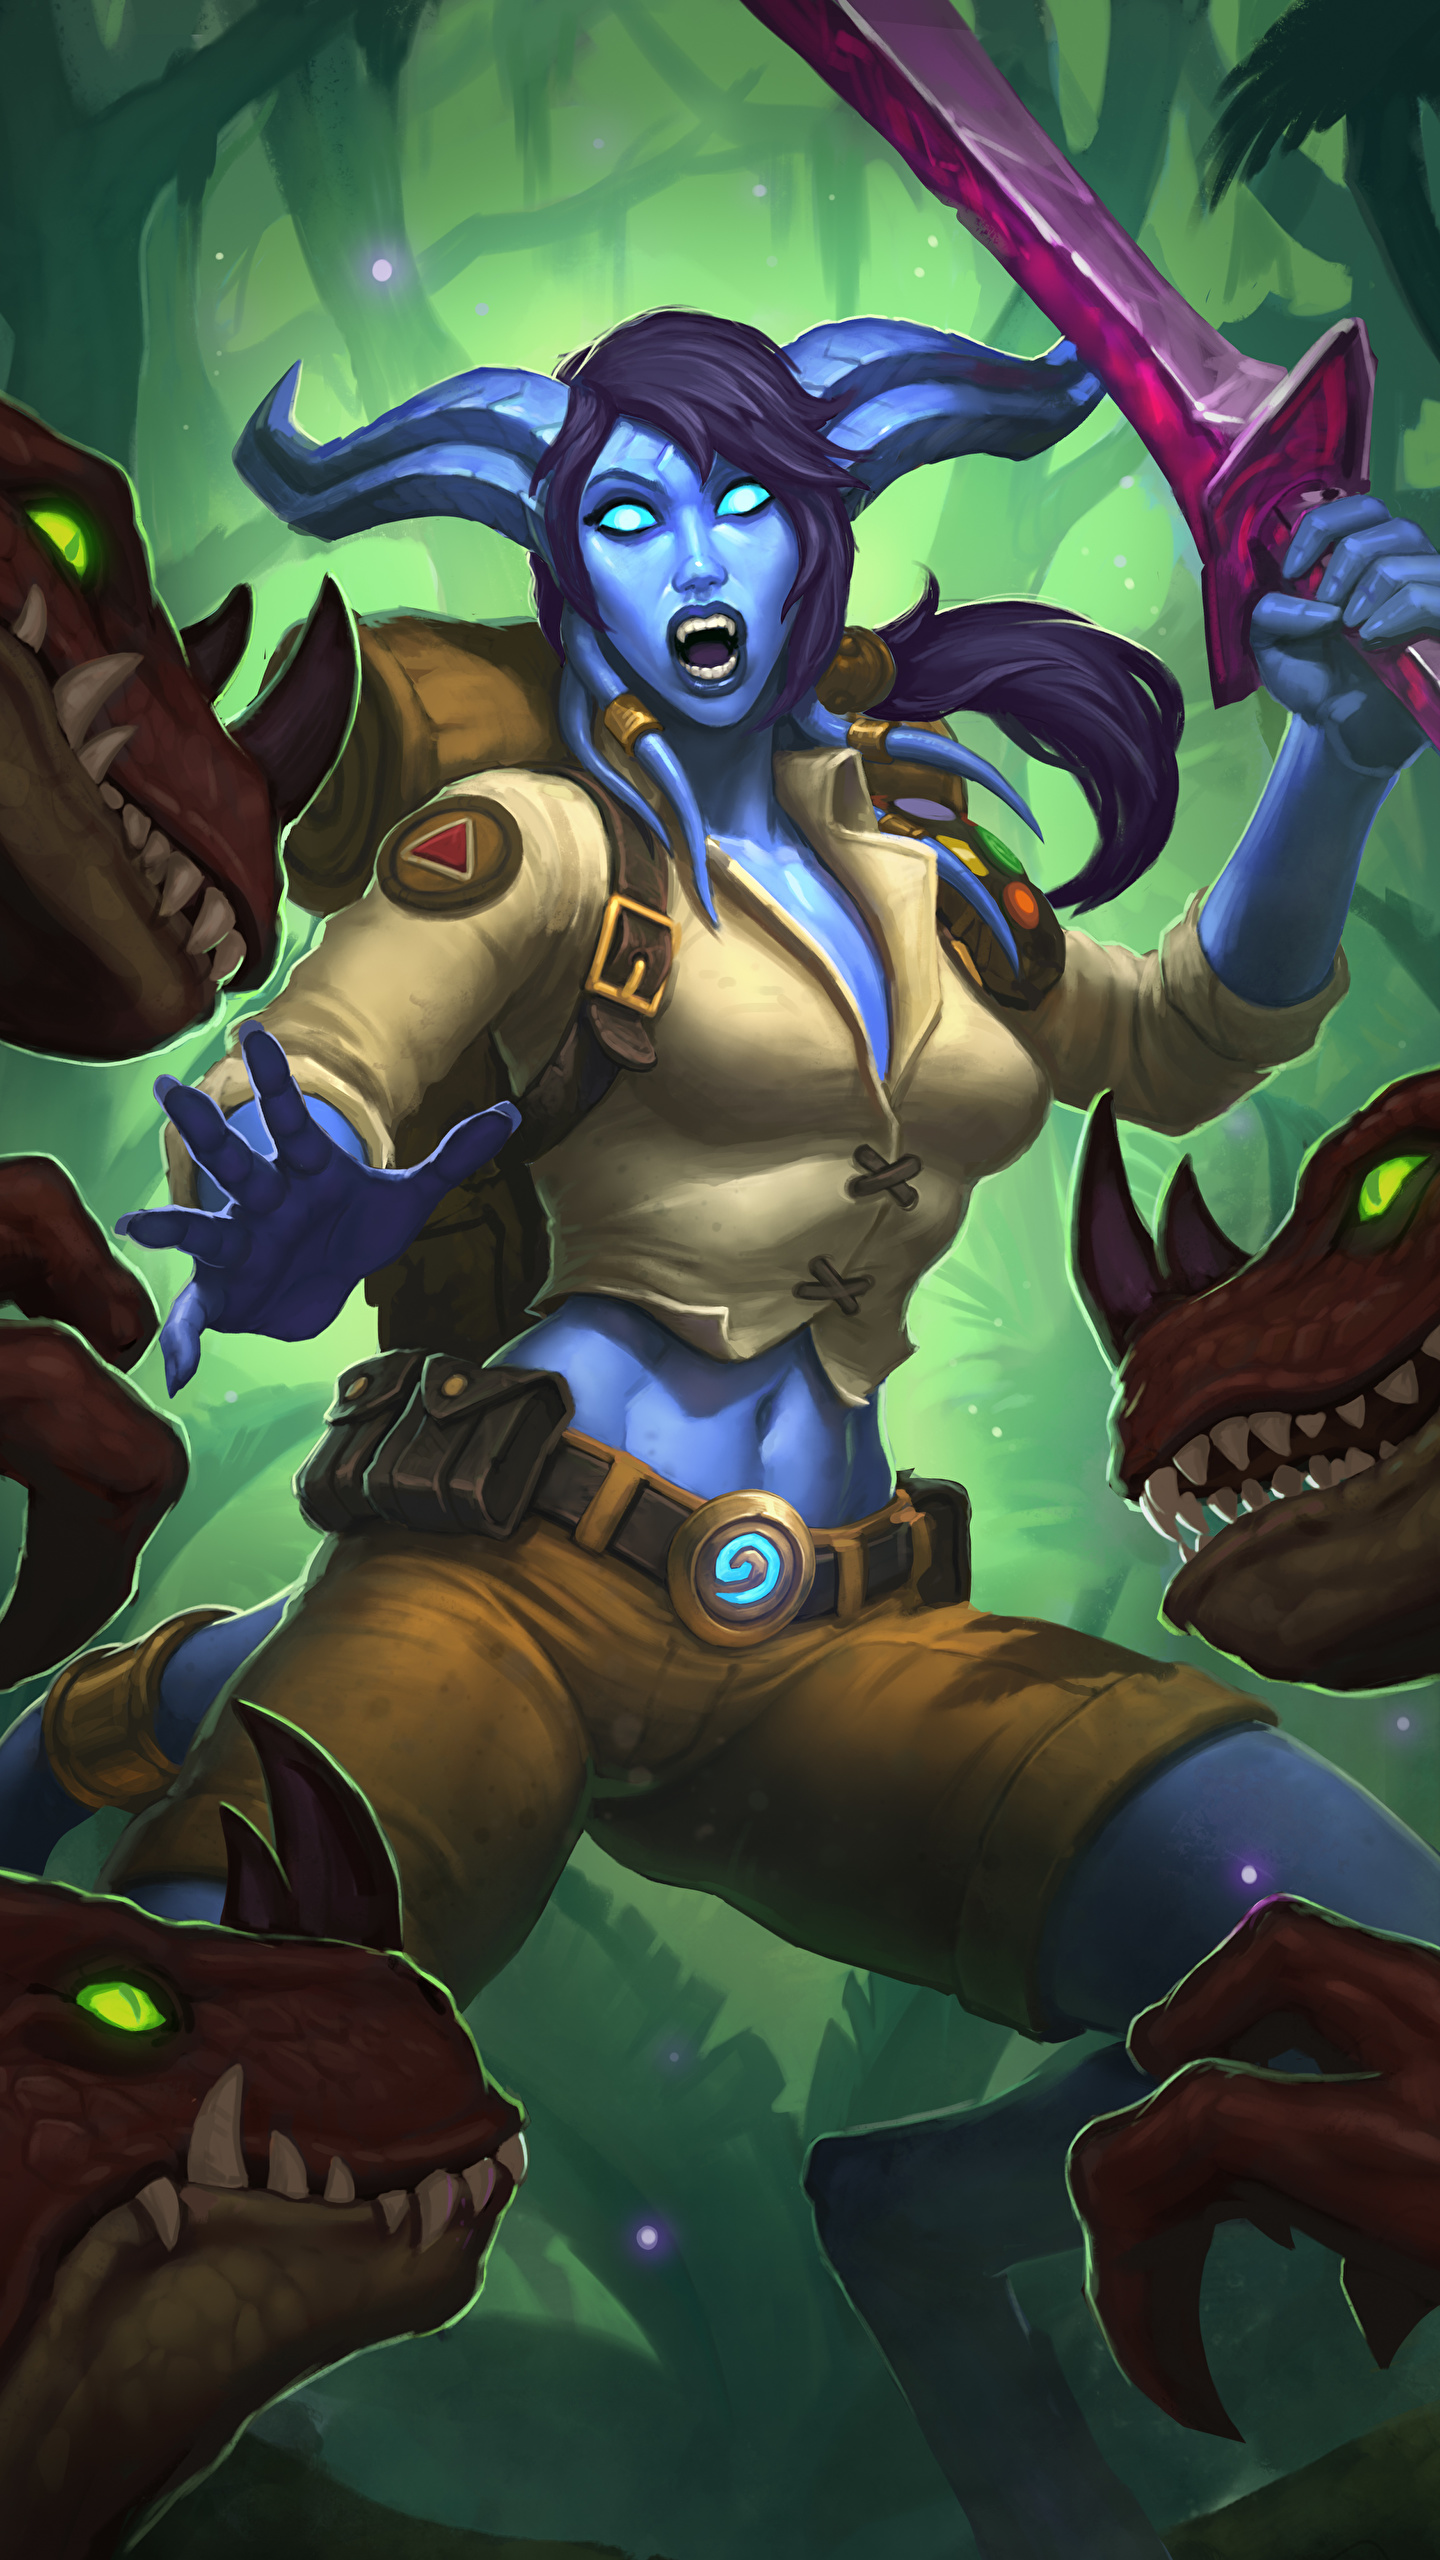 World of warcraft porno draenei xxx pics